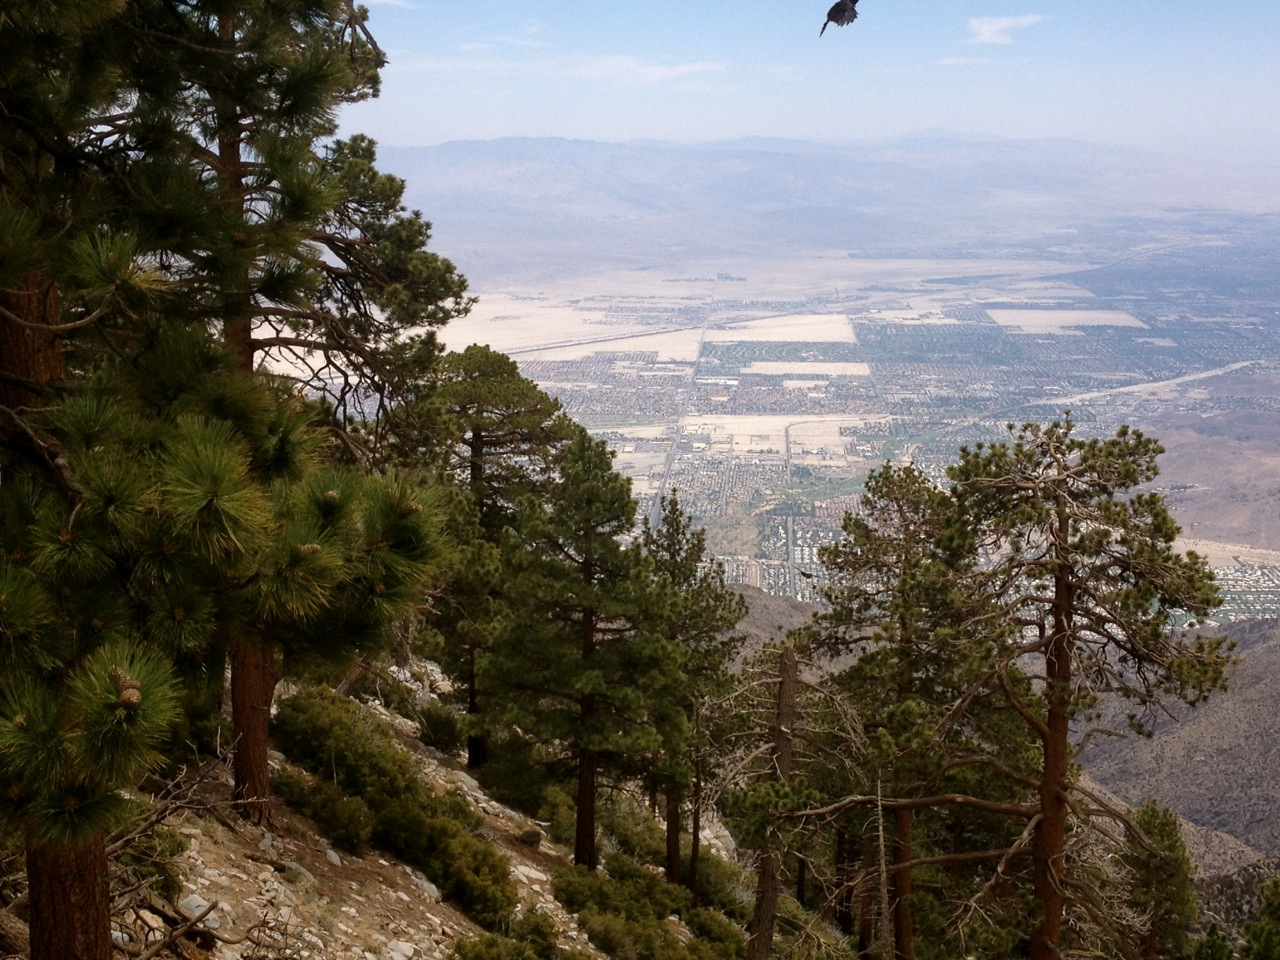 Desert View Trail – Mount San Jacinto State Park, California